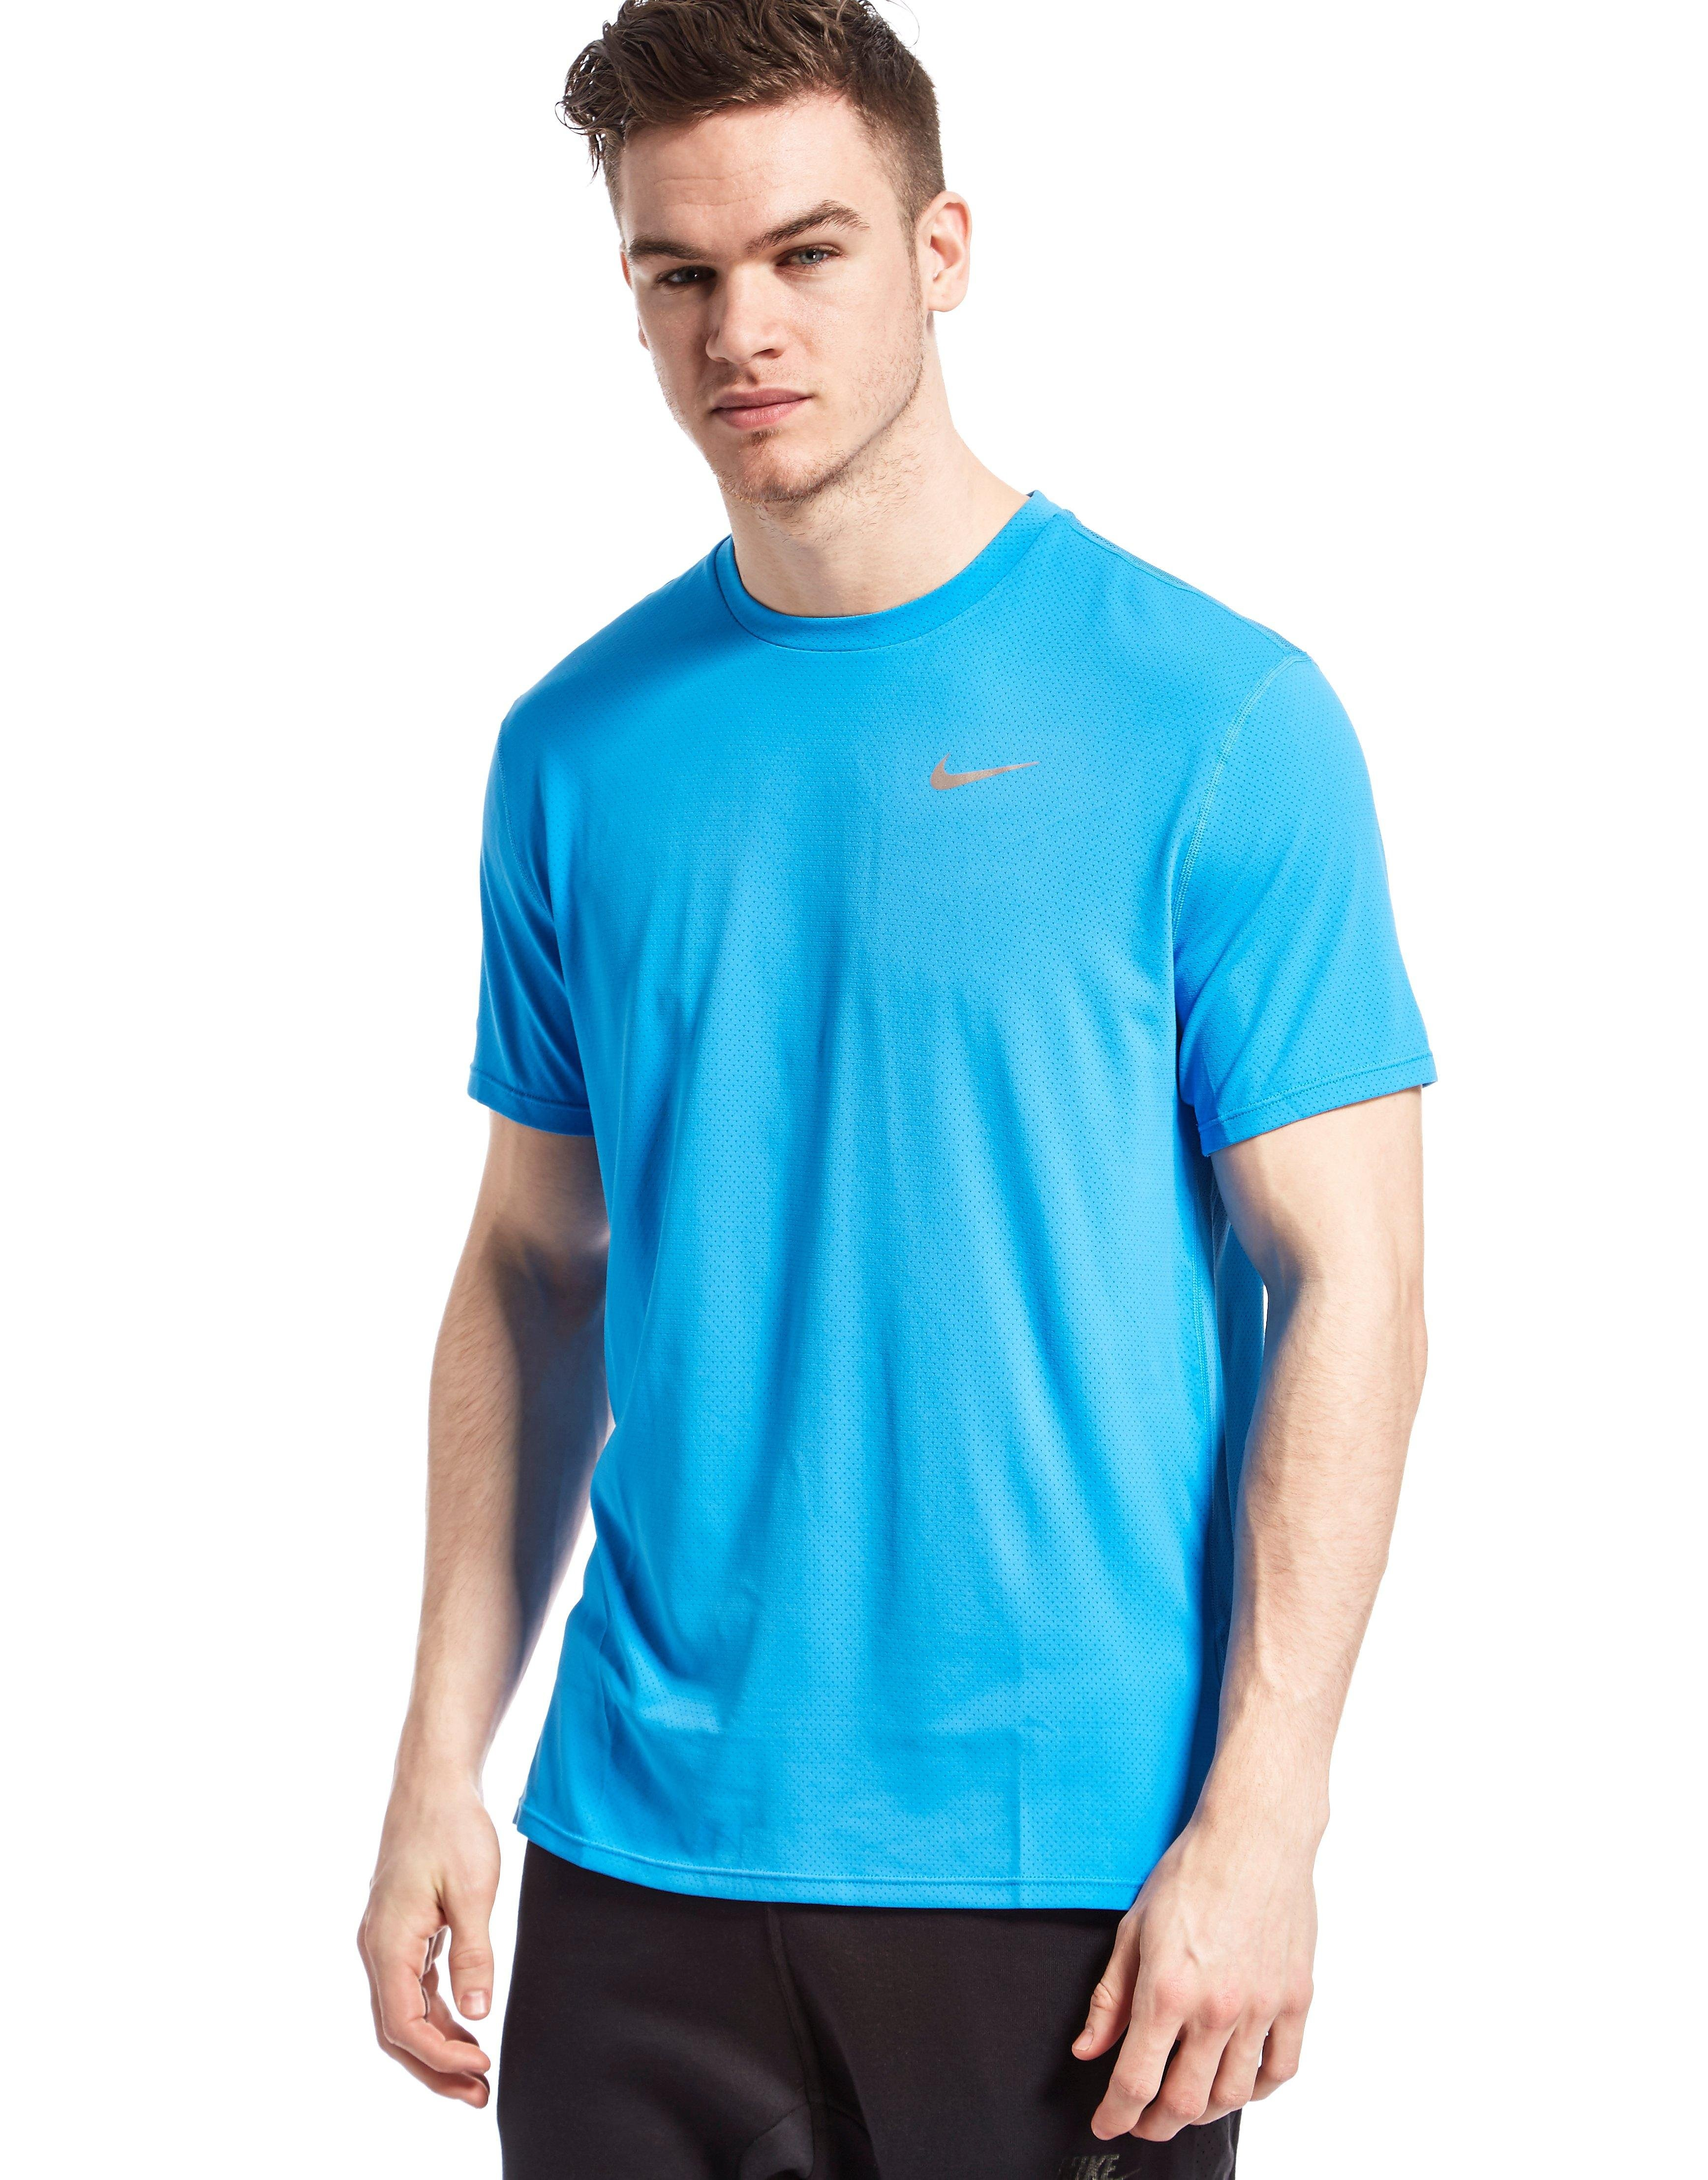 Nike  Men's Dry Contour Short-Sleeve Running Top